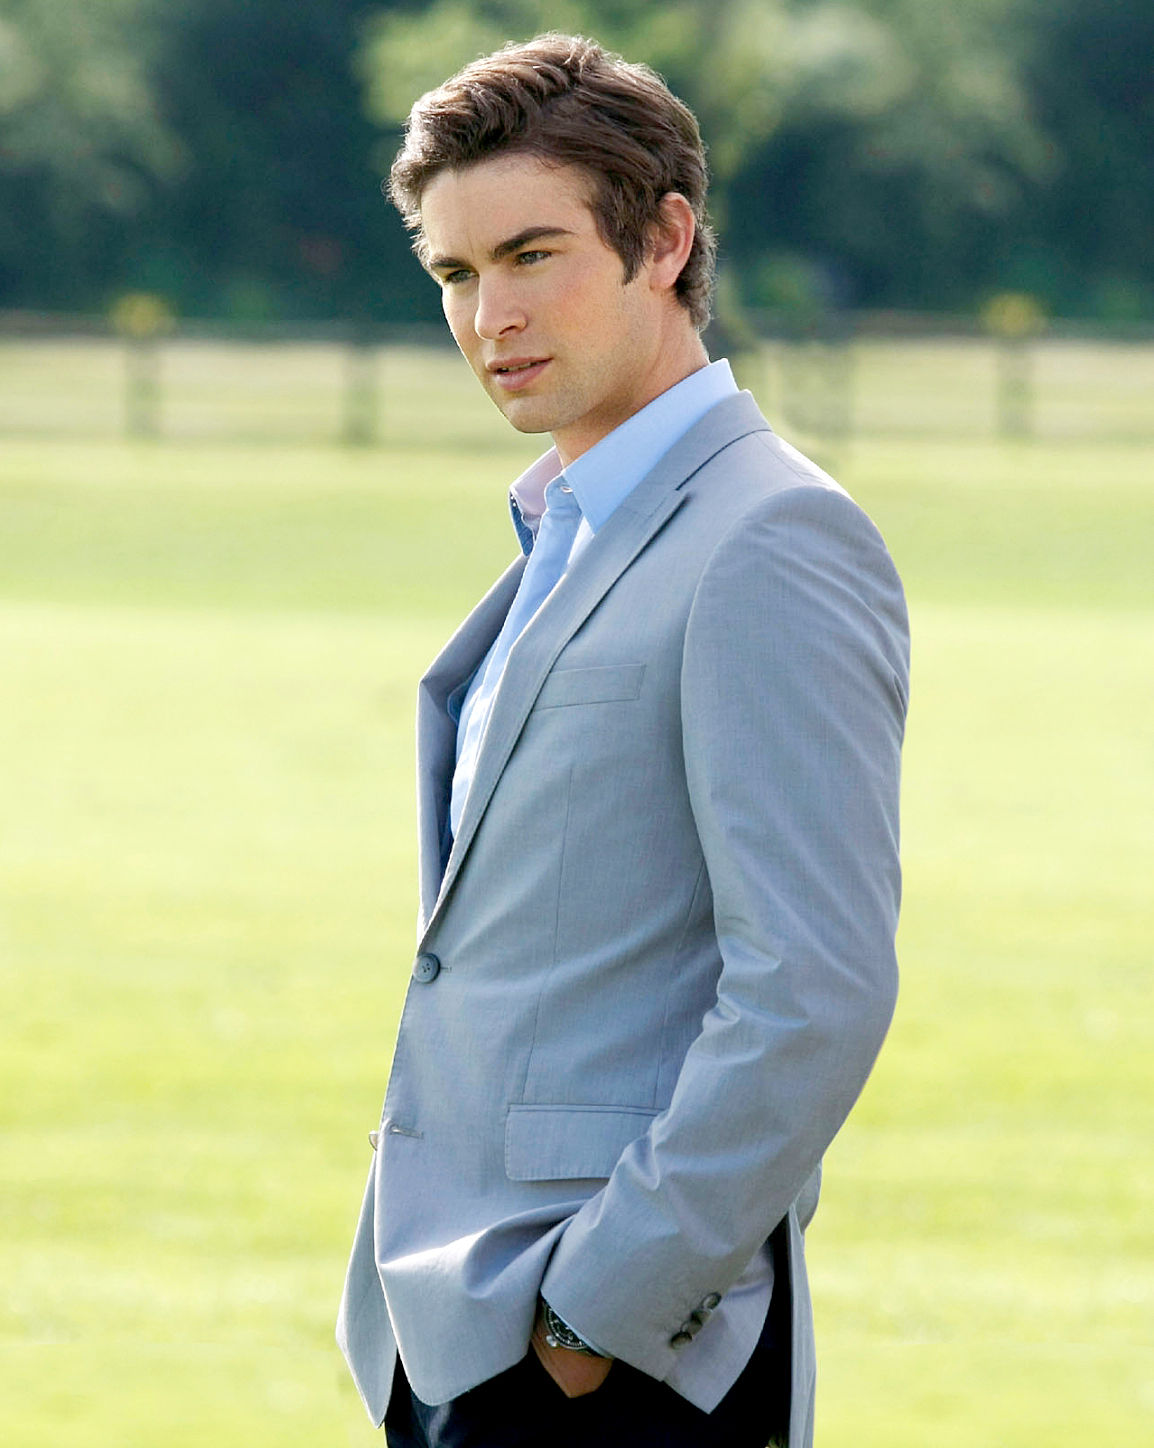 Chace Crawford as Nate on Gossip Girl